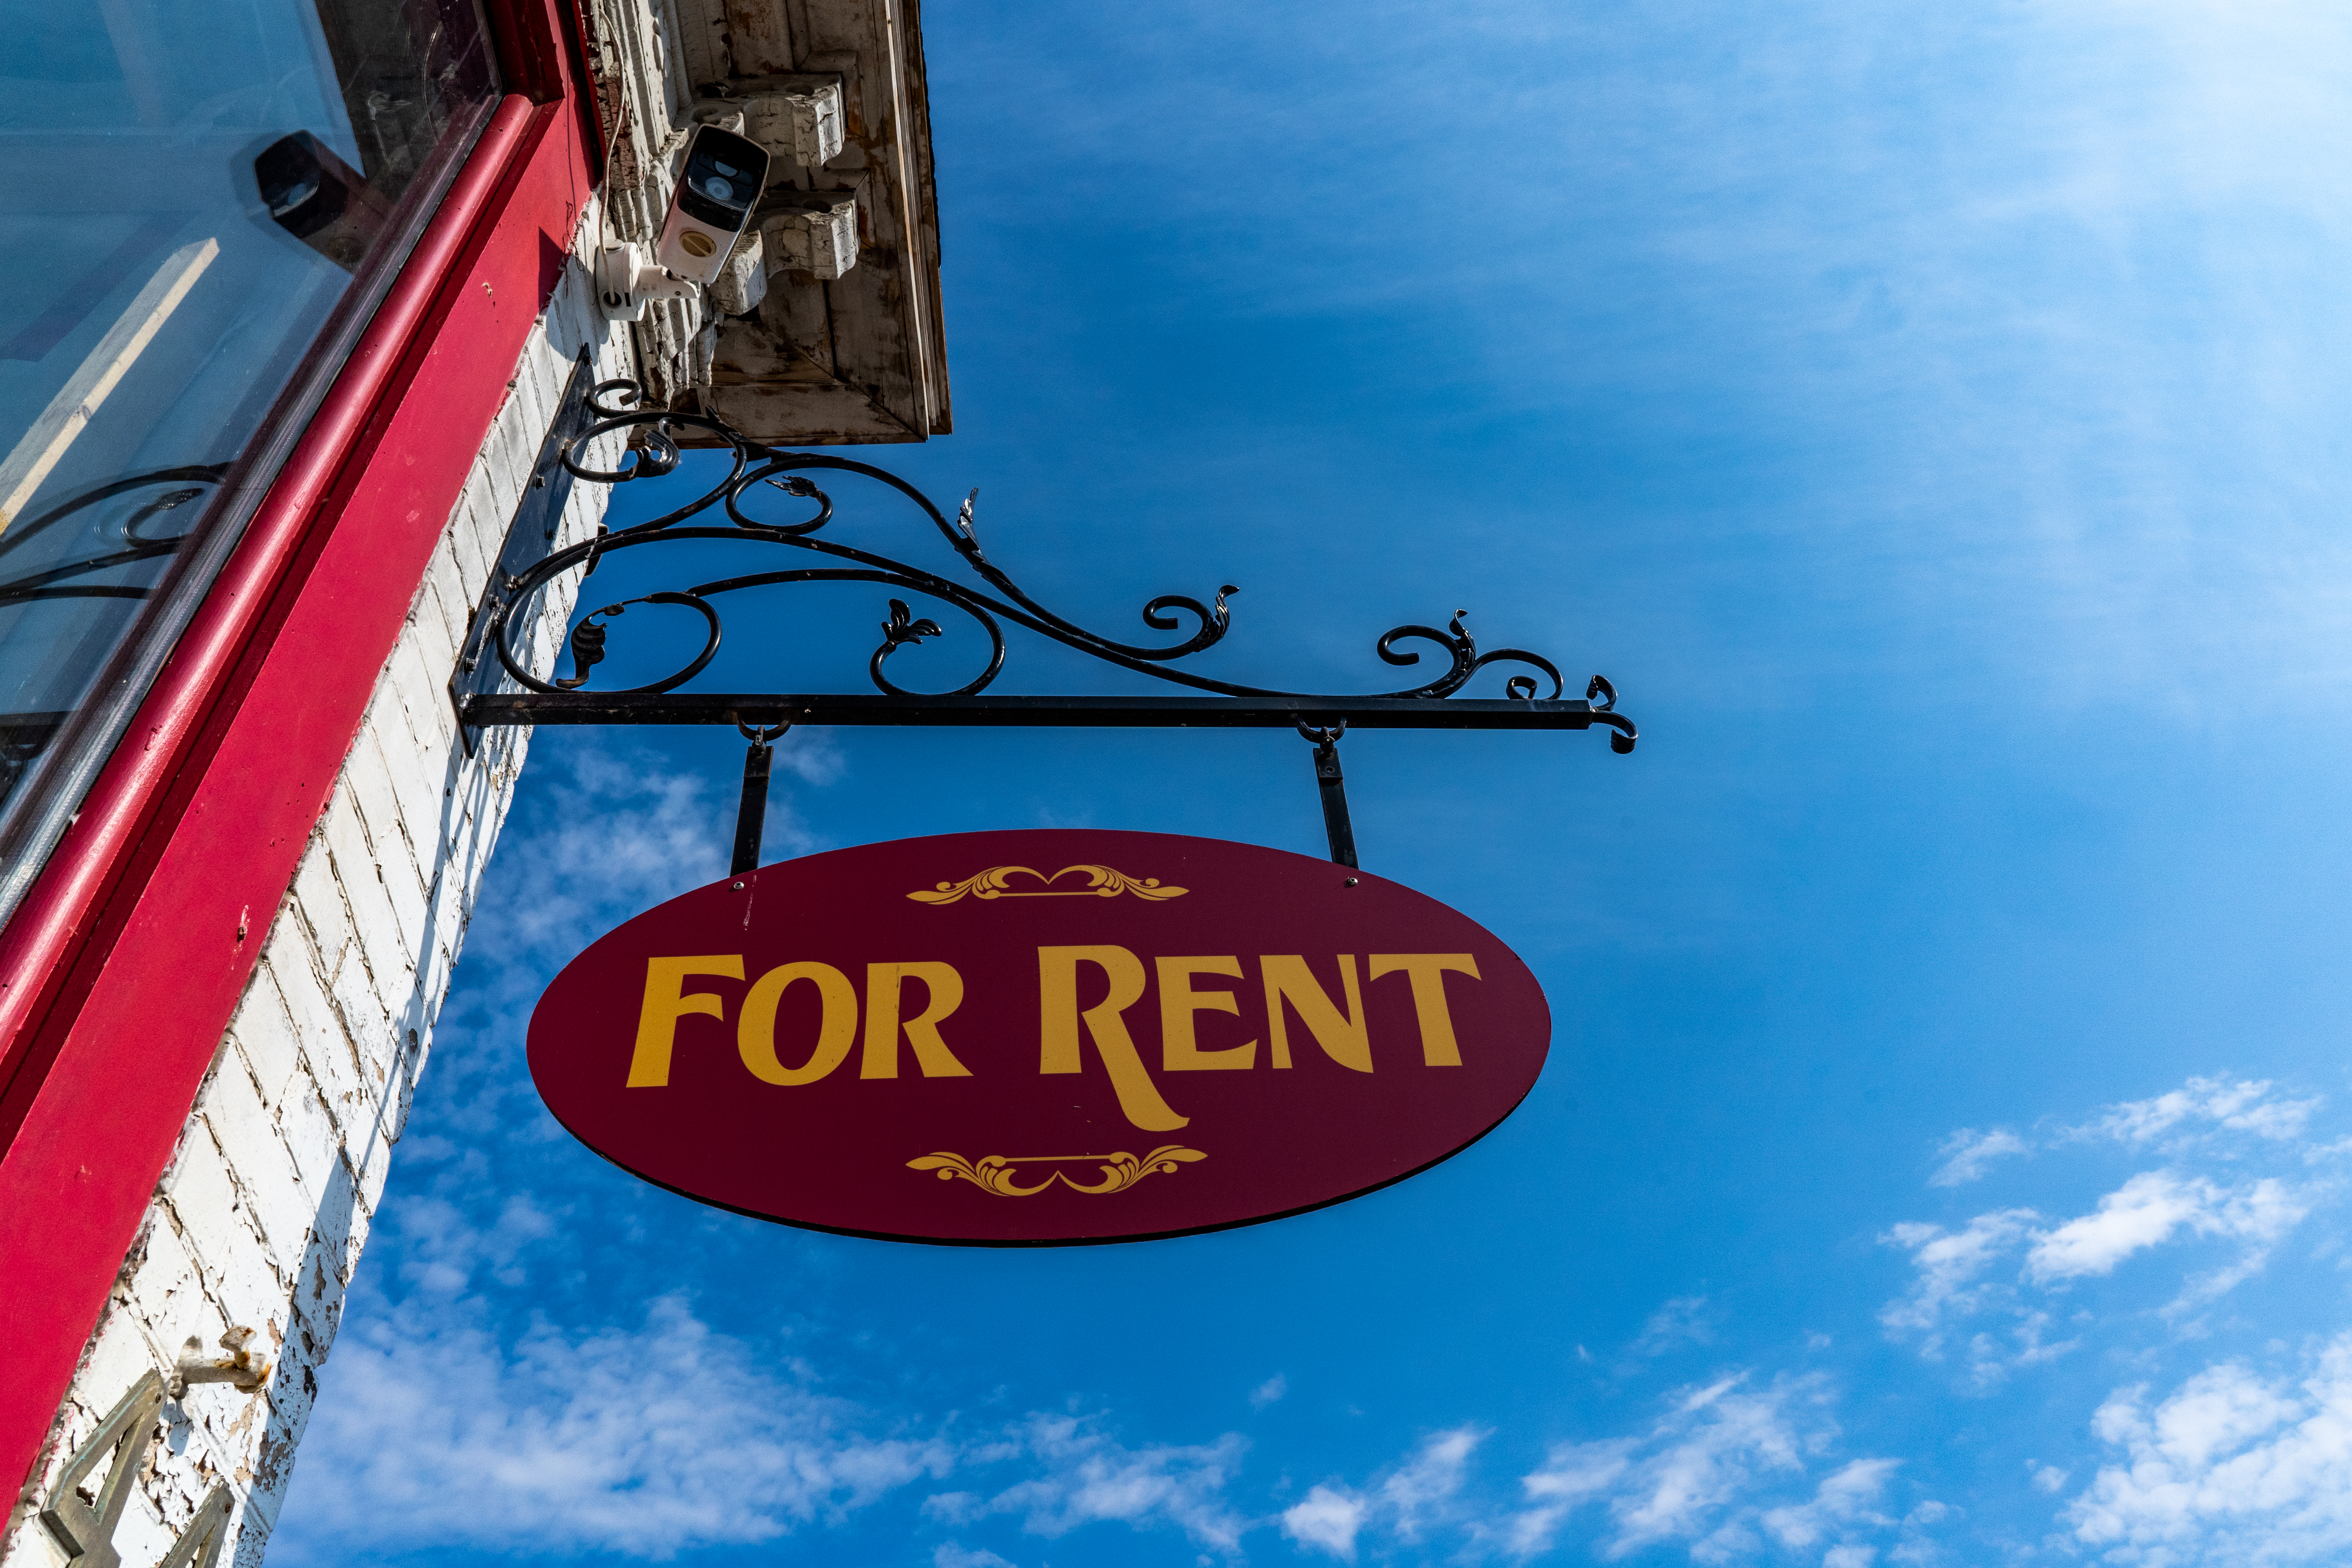 Try These Suggestions to Help with Business Rent